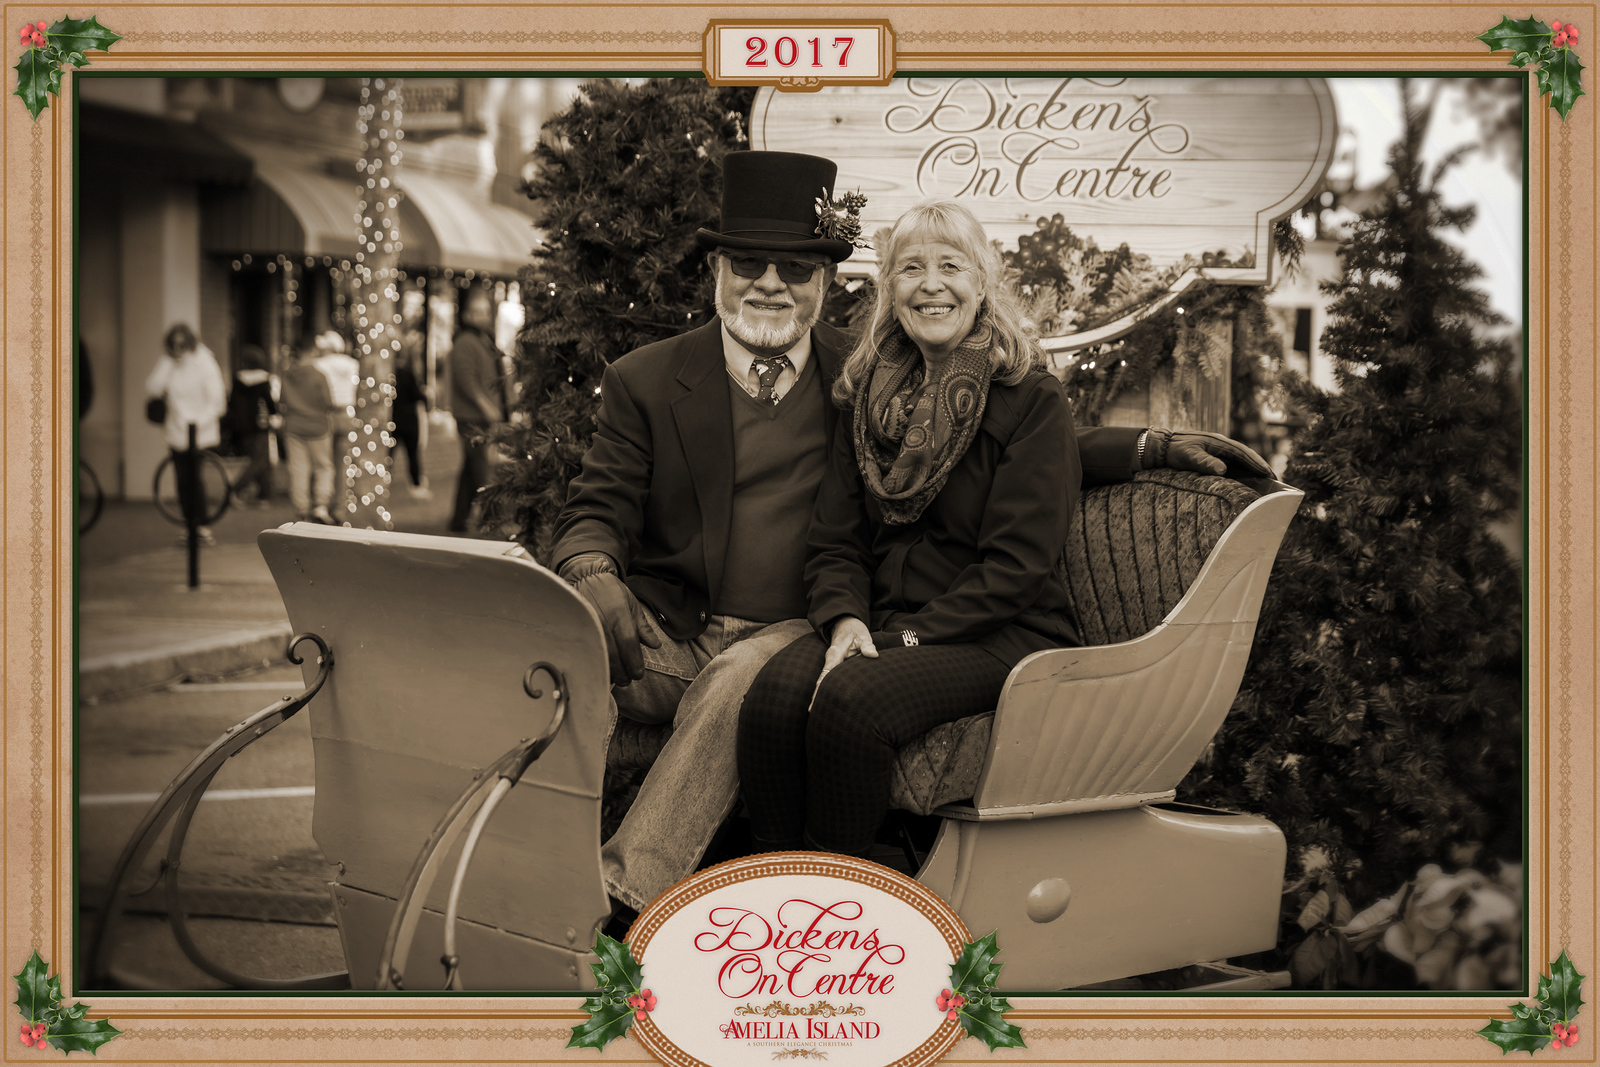 2017 Dickens on Centre - Old Time Photos 168A - Deremer Studios LLC